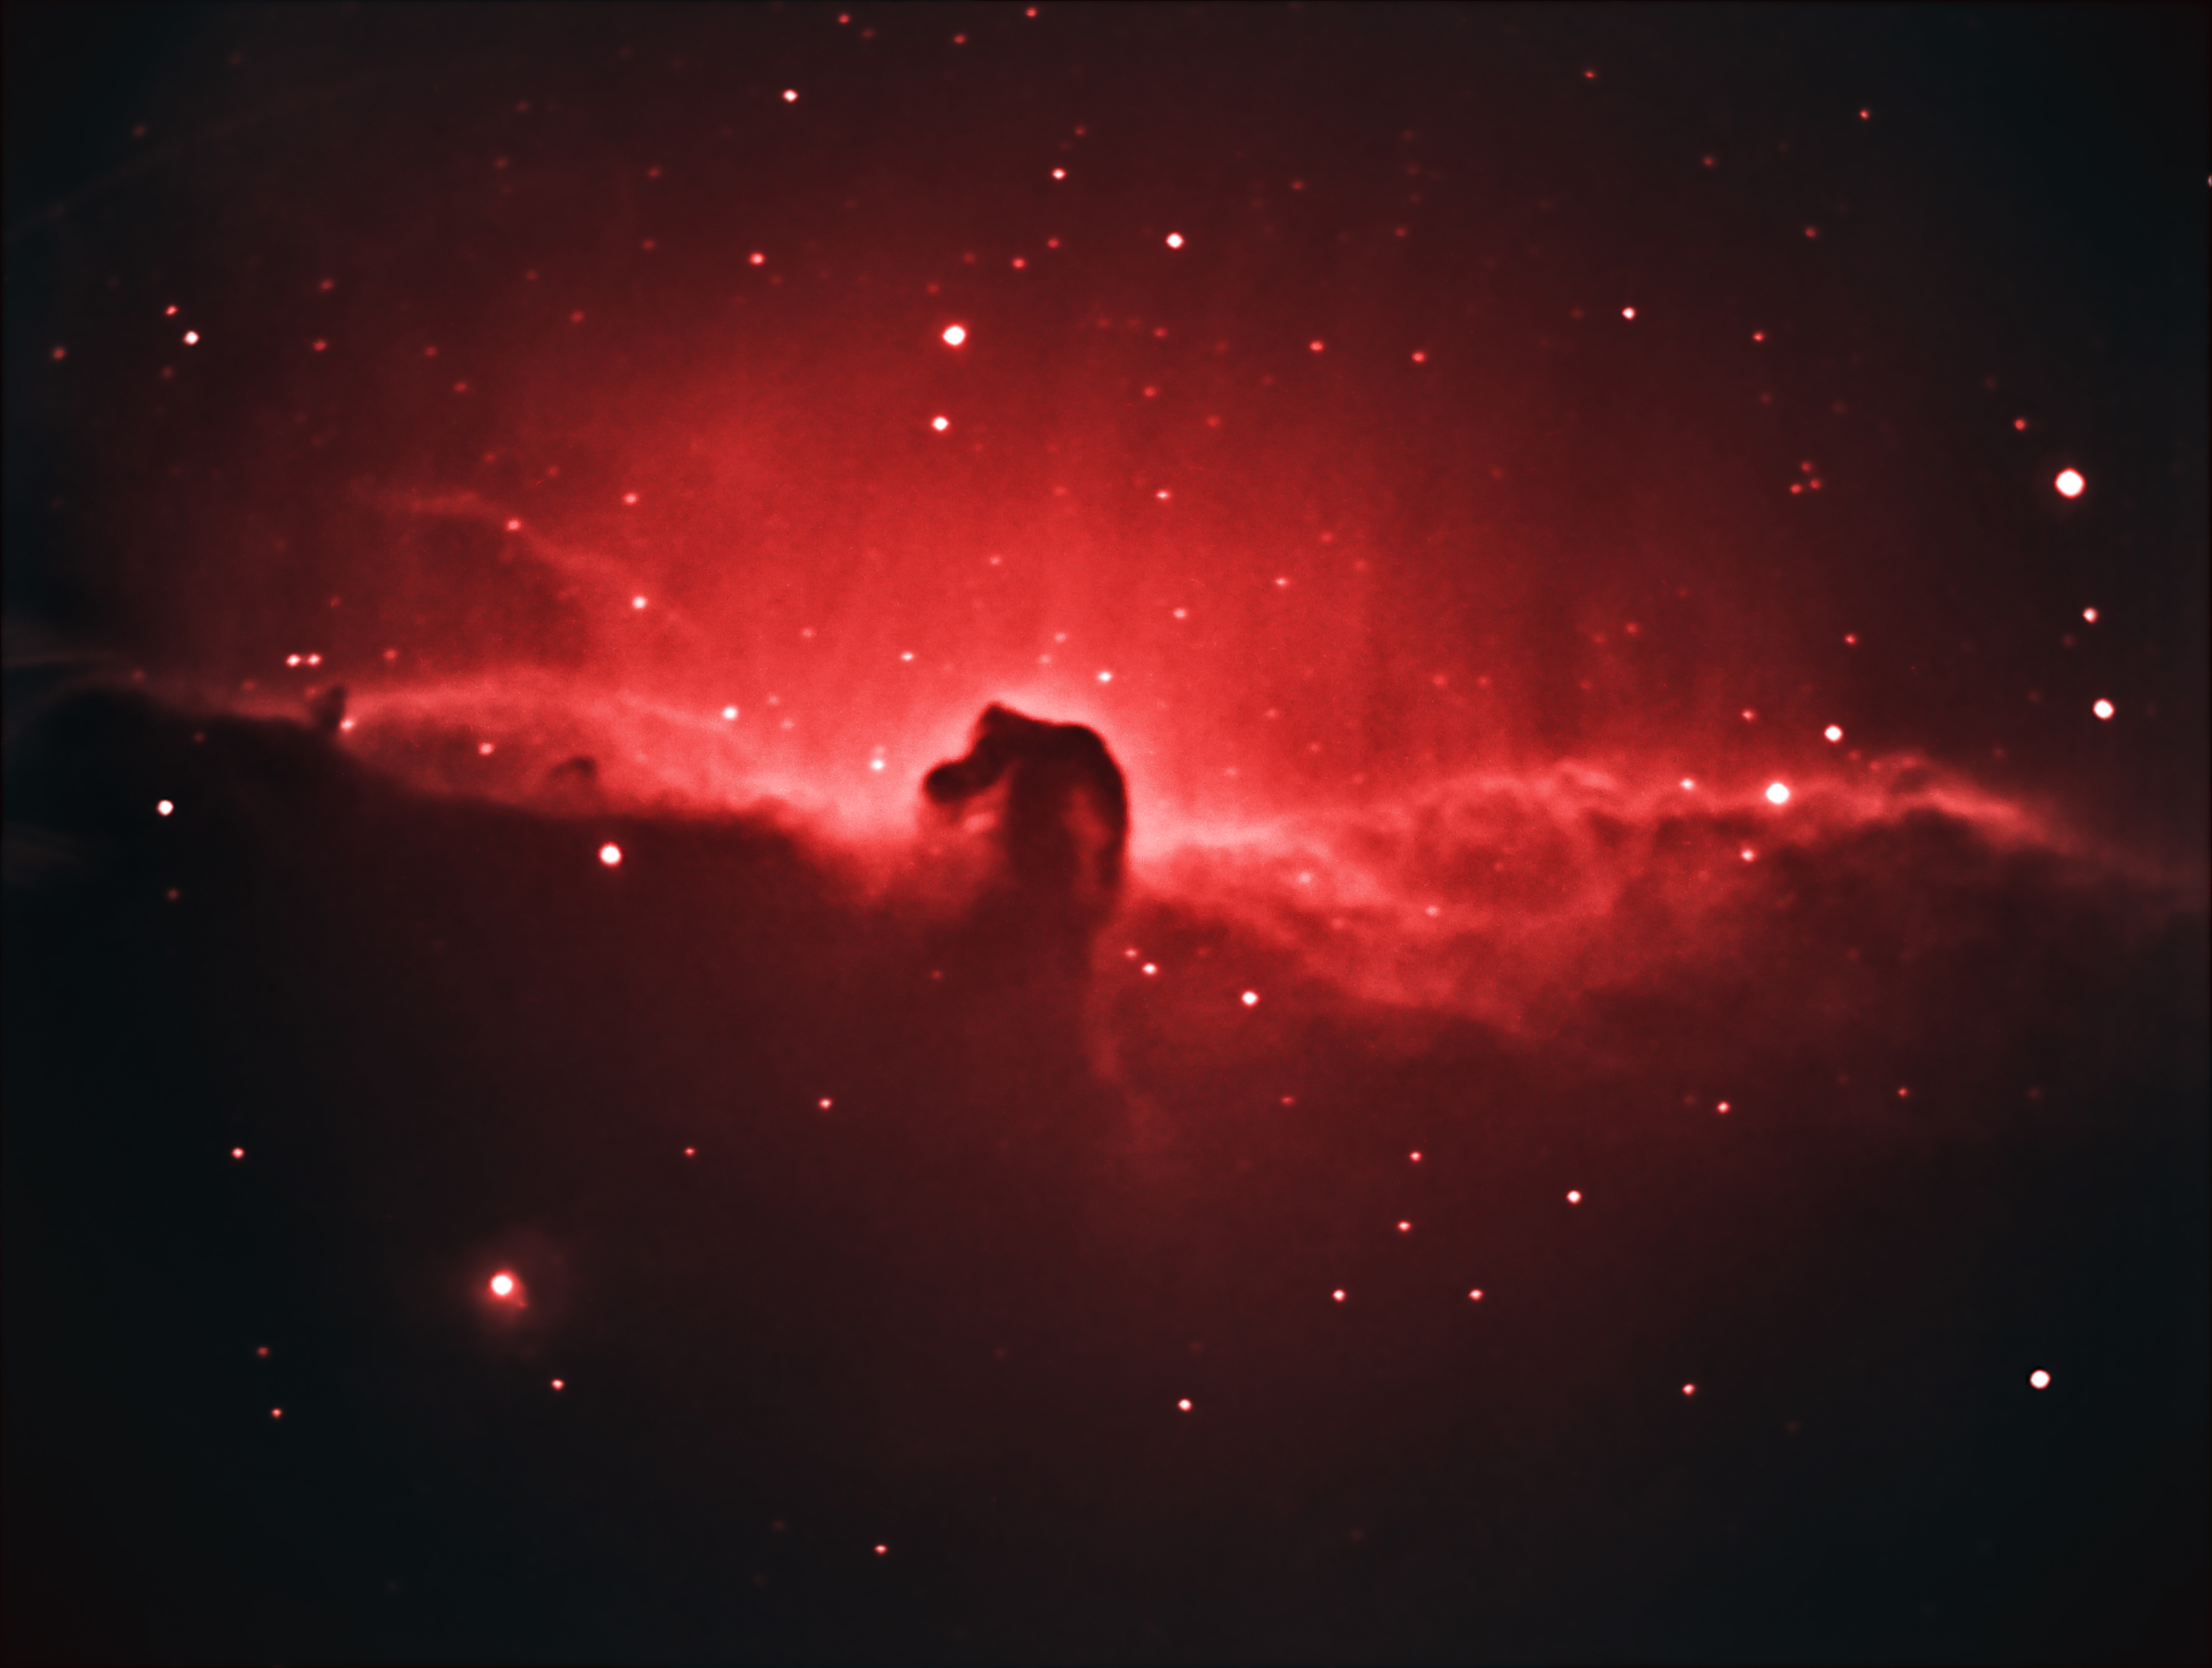 horsehead nebula pictures - HD1920×1448